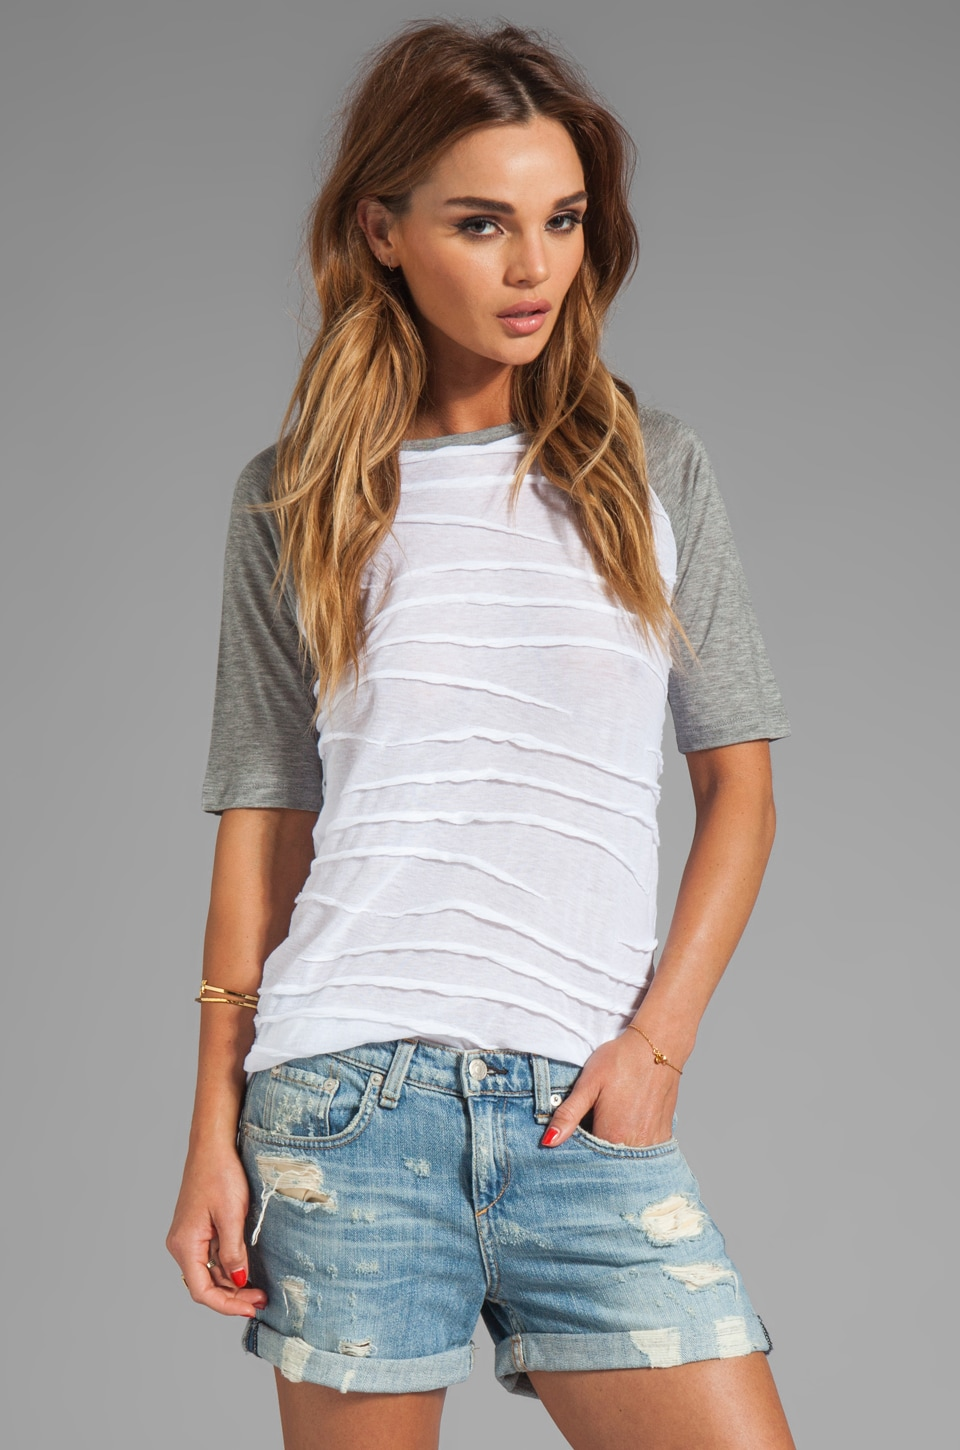 DEREK LAM 10 CROSBY Short Sleeve Top in White/Grey Melange